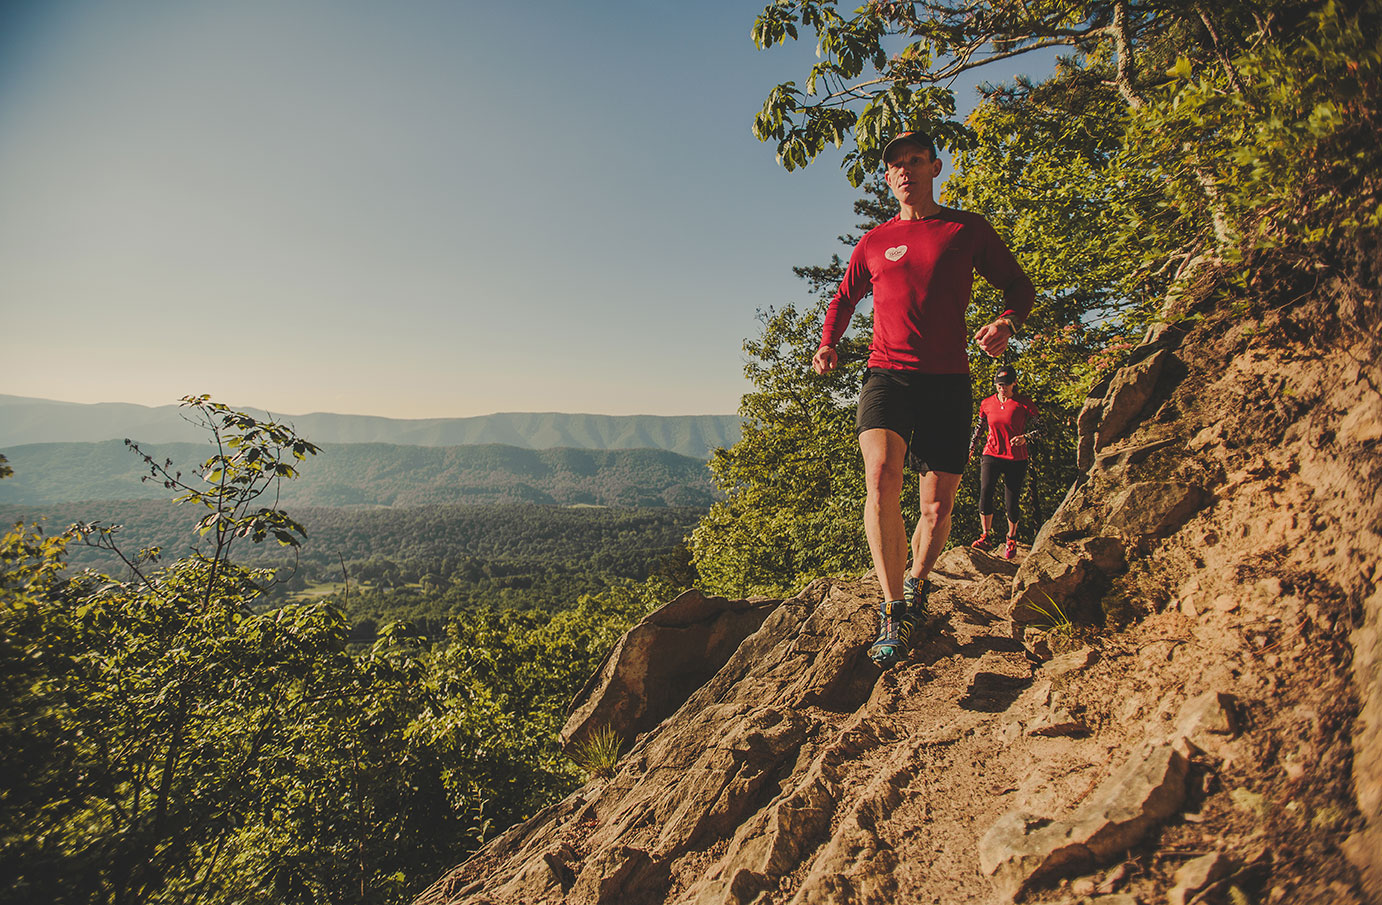 Outdoor Industries in the Roanoke Region